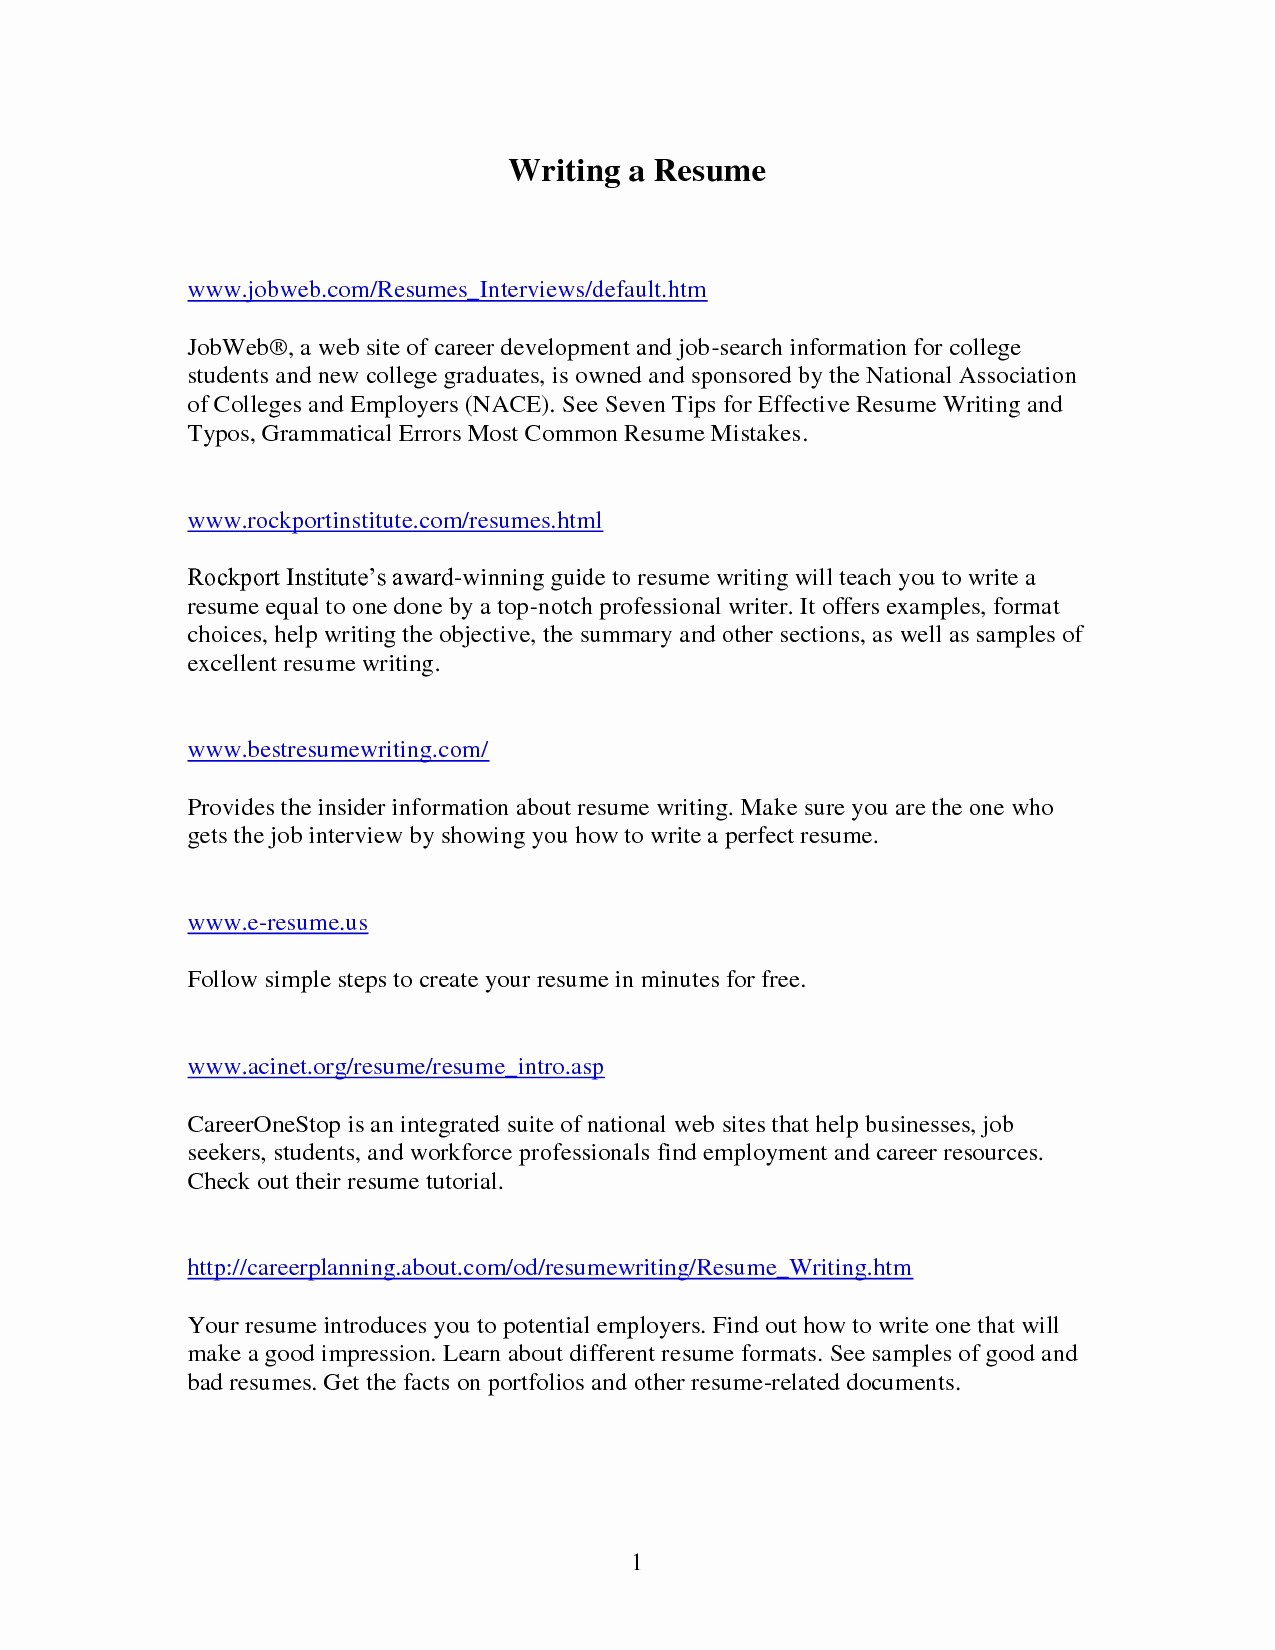 Mover Job Description for Resume - 19 Mover Job Description for Resume